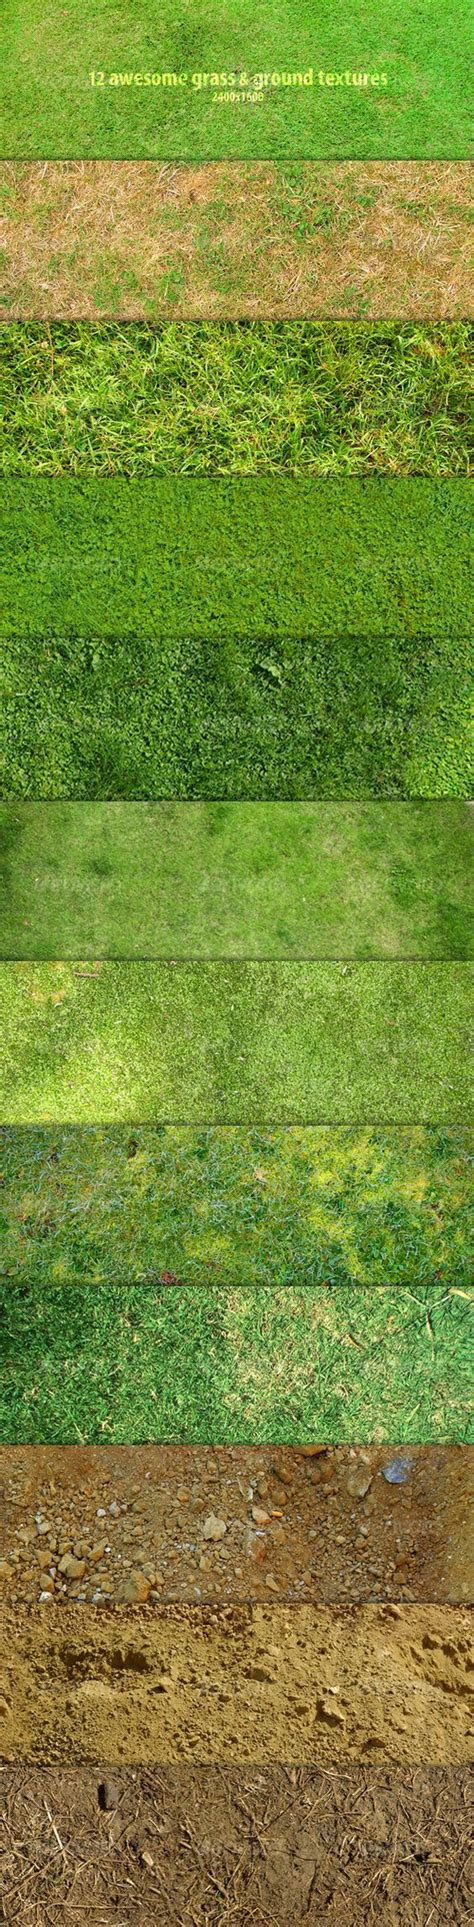 grounds for sectioning 12 awesome grass ground textures awesome graphics and